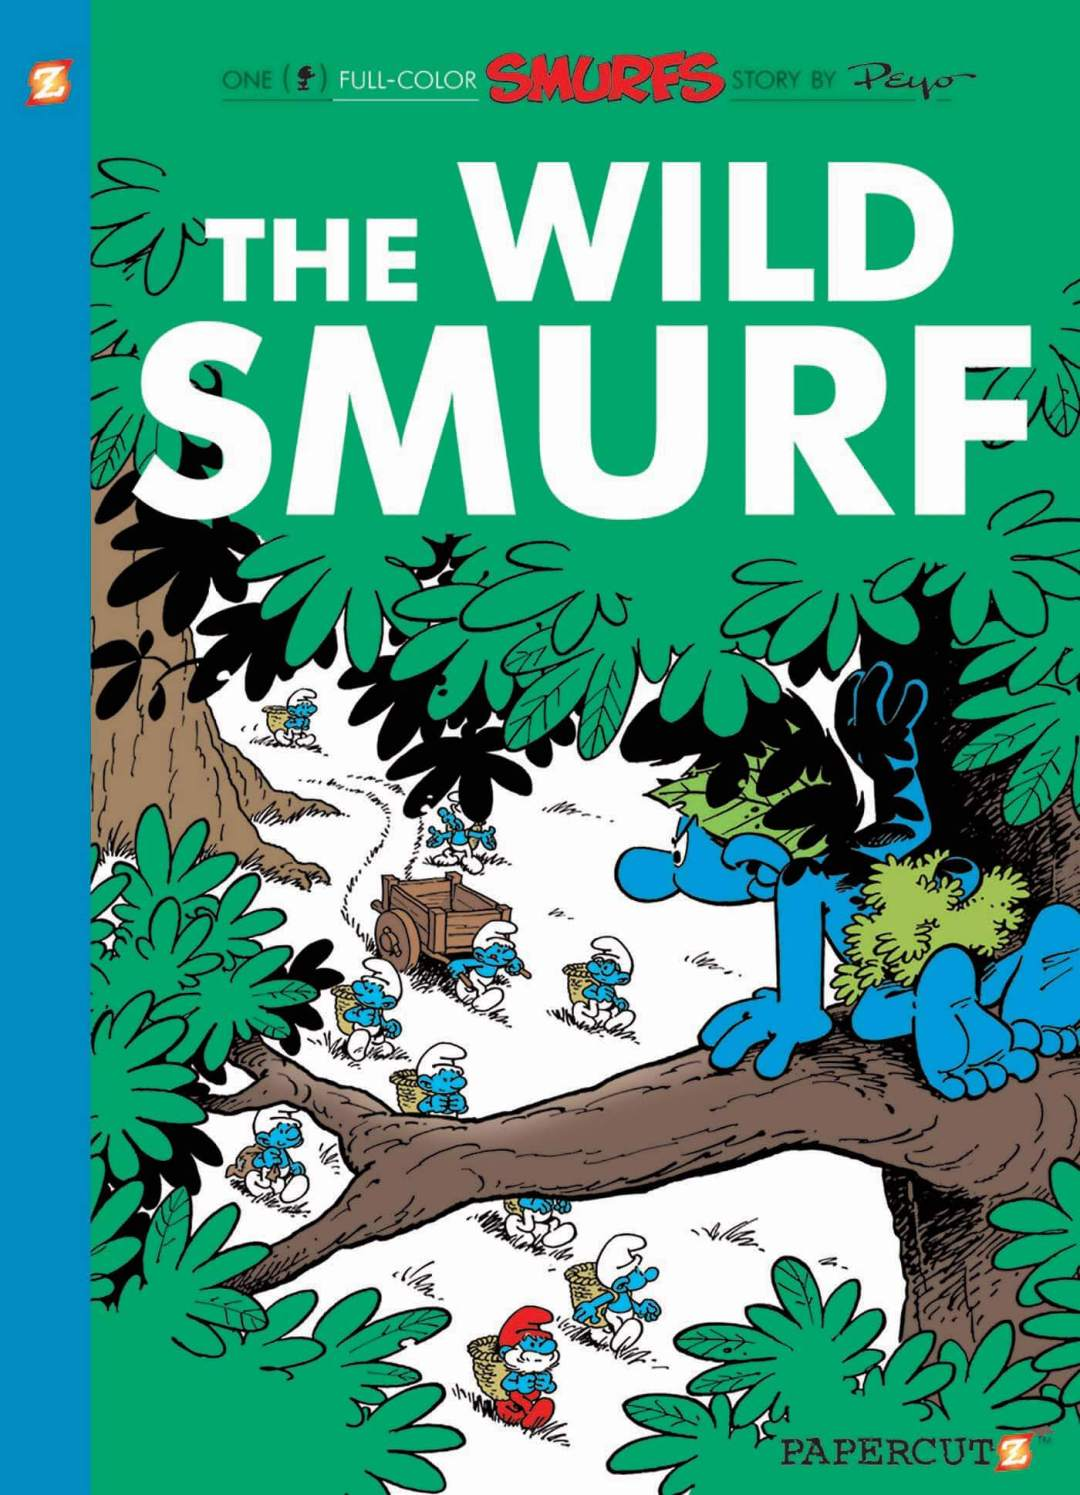 SMURFS_21_cover_graphic